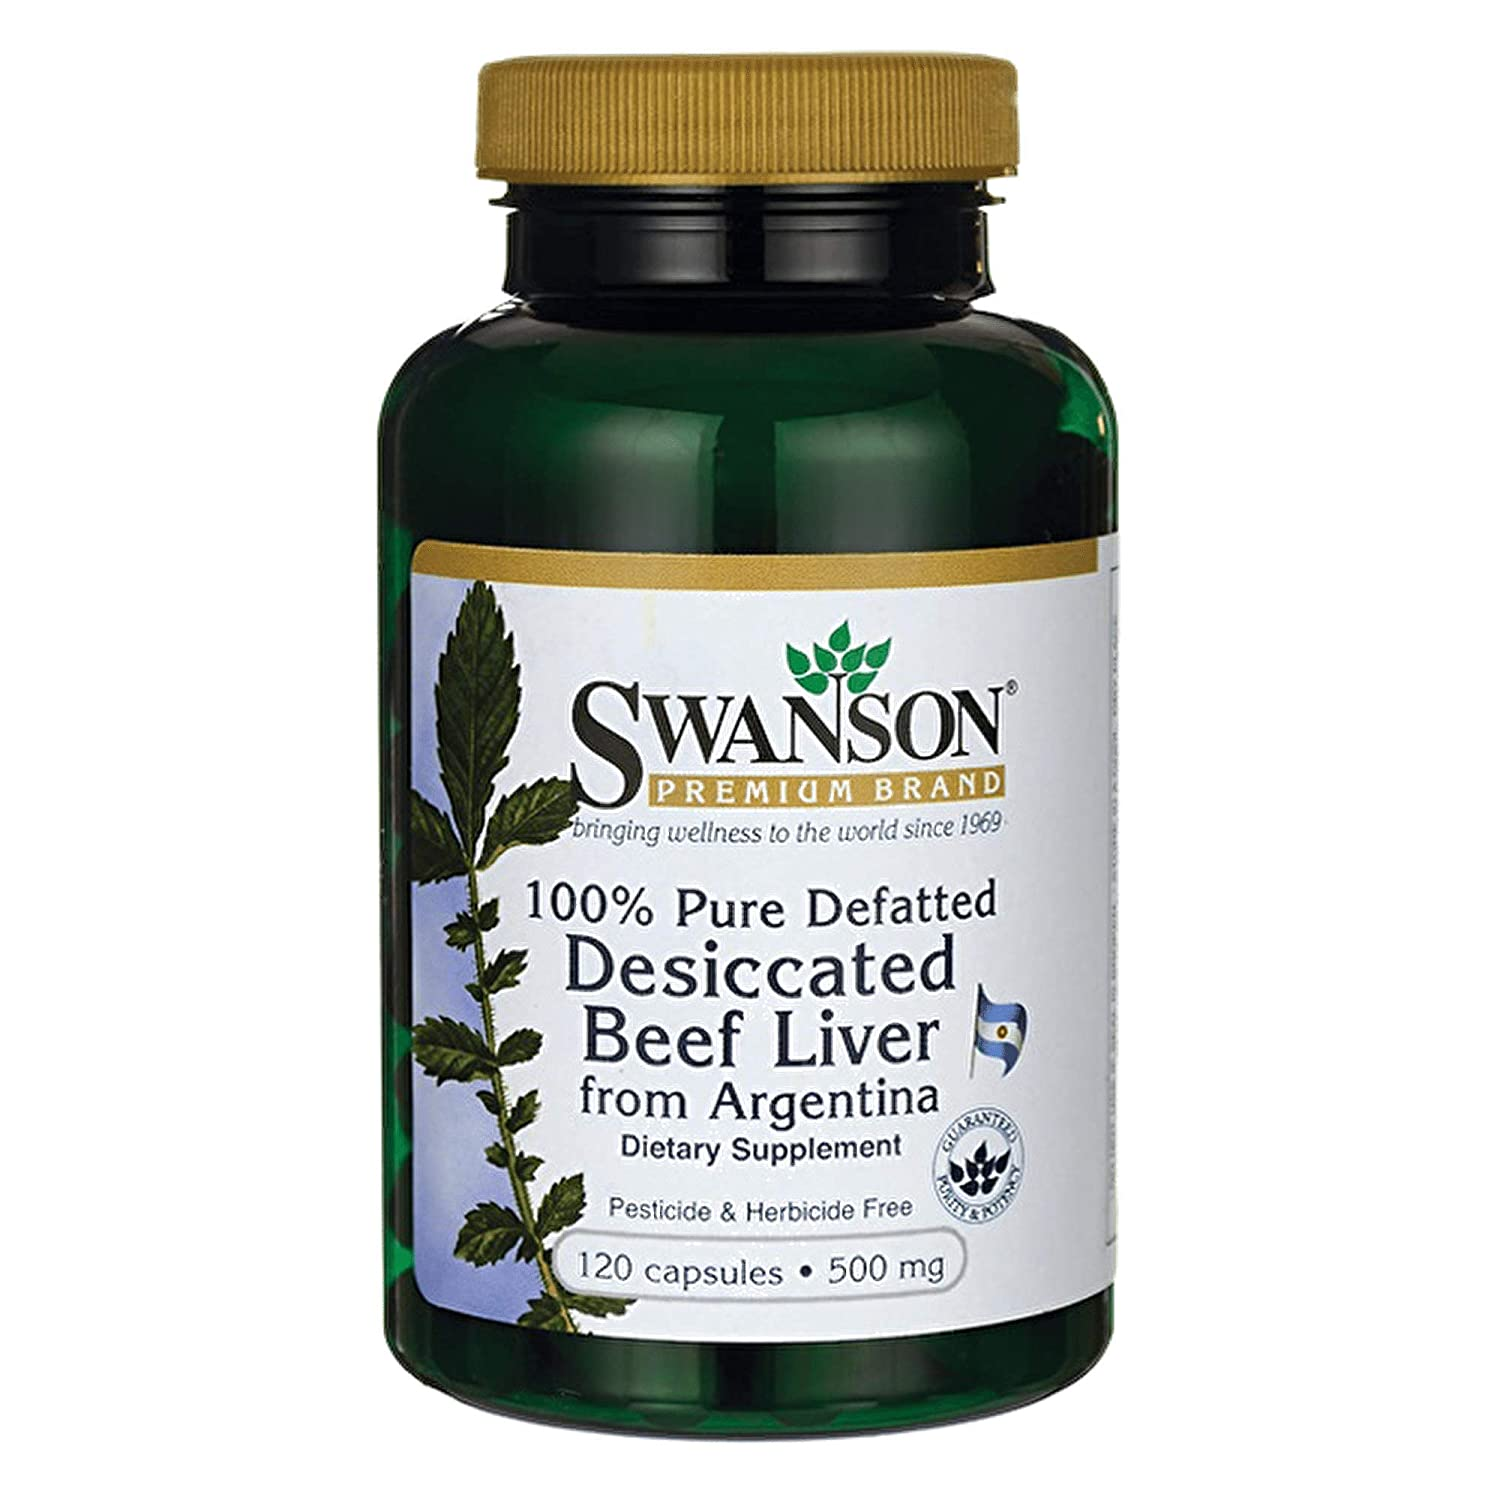 Amazon.com: Swanson 100% Pure Defatted Desiccated Beef Liver 500 mg 120 Caps 4 Pack: Health & Personal Care